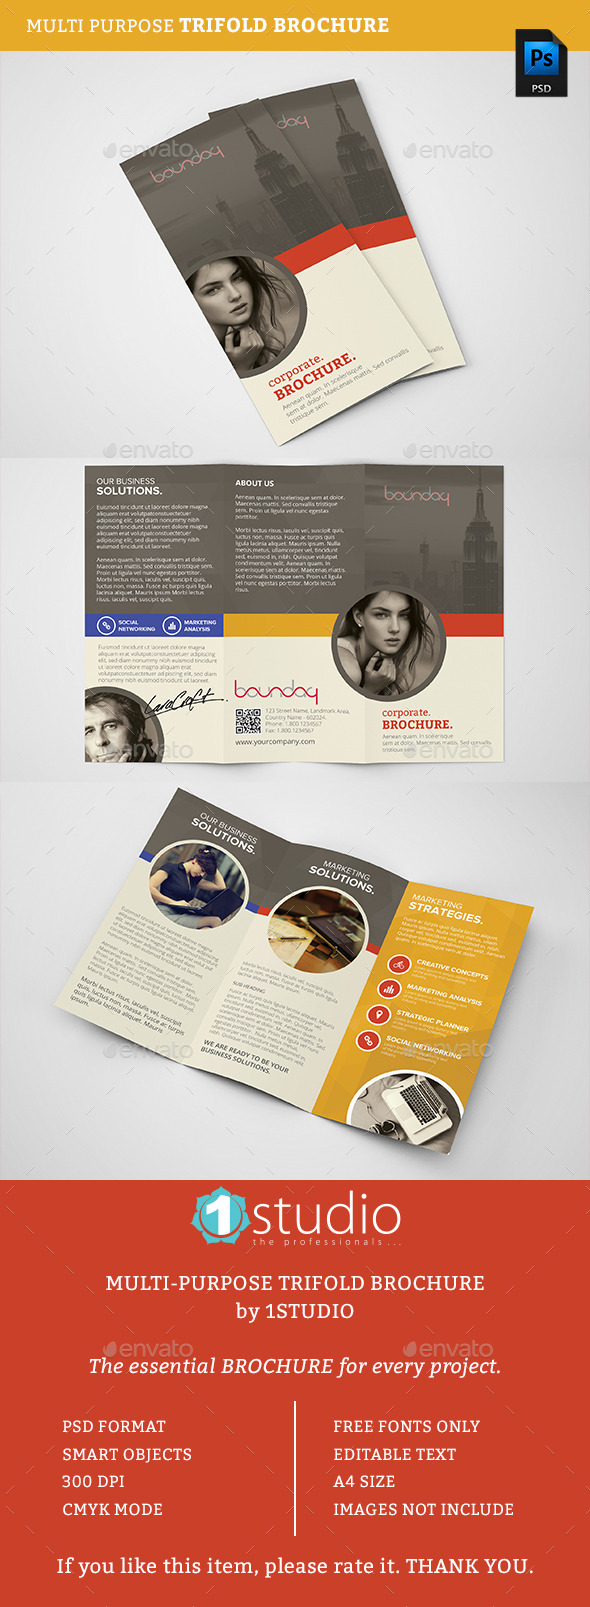 Trifold Brochure 07 - Business - Corporate Brochures